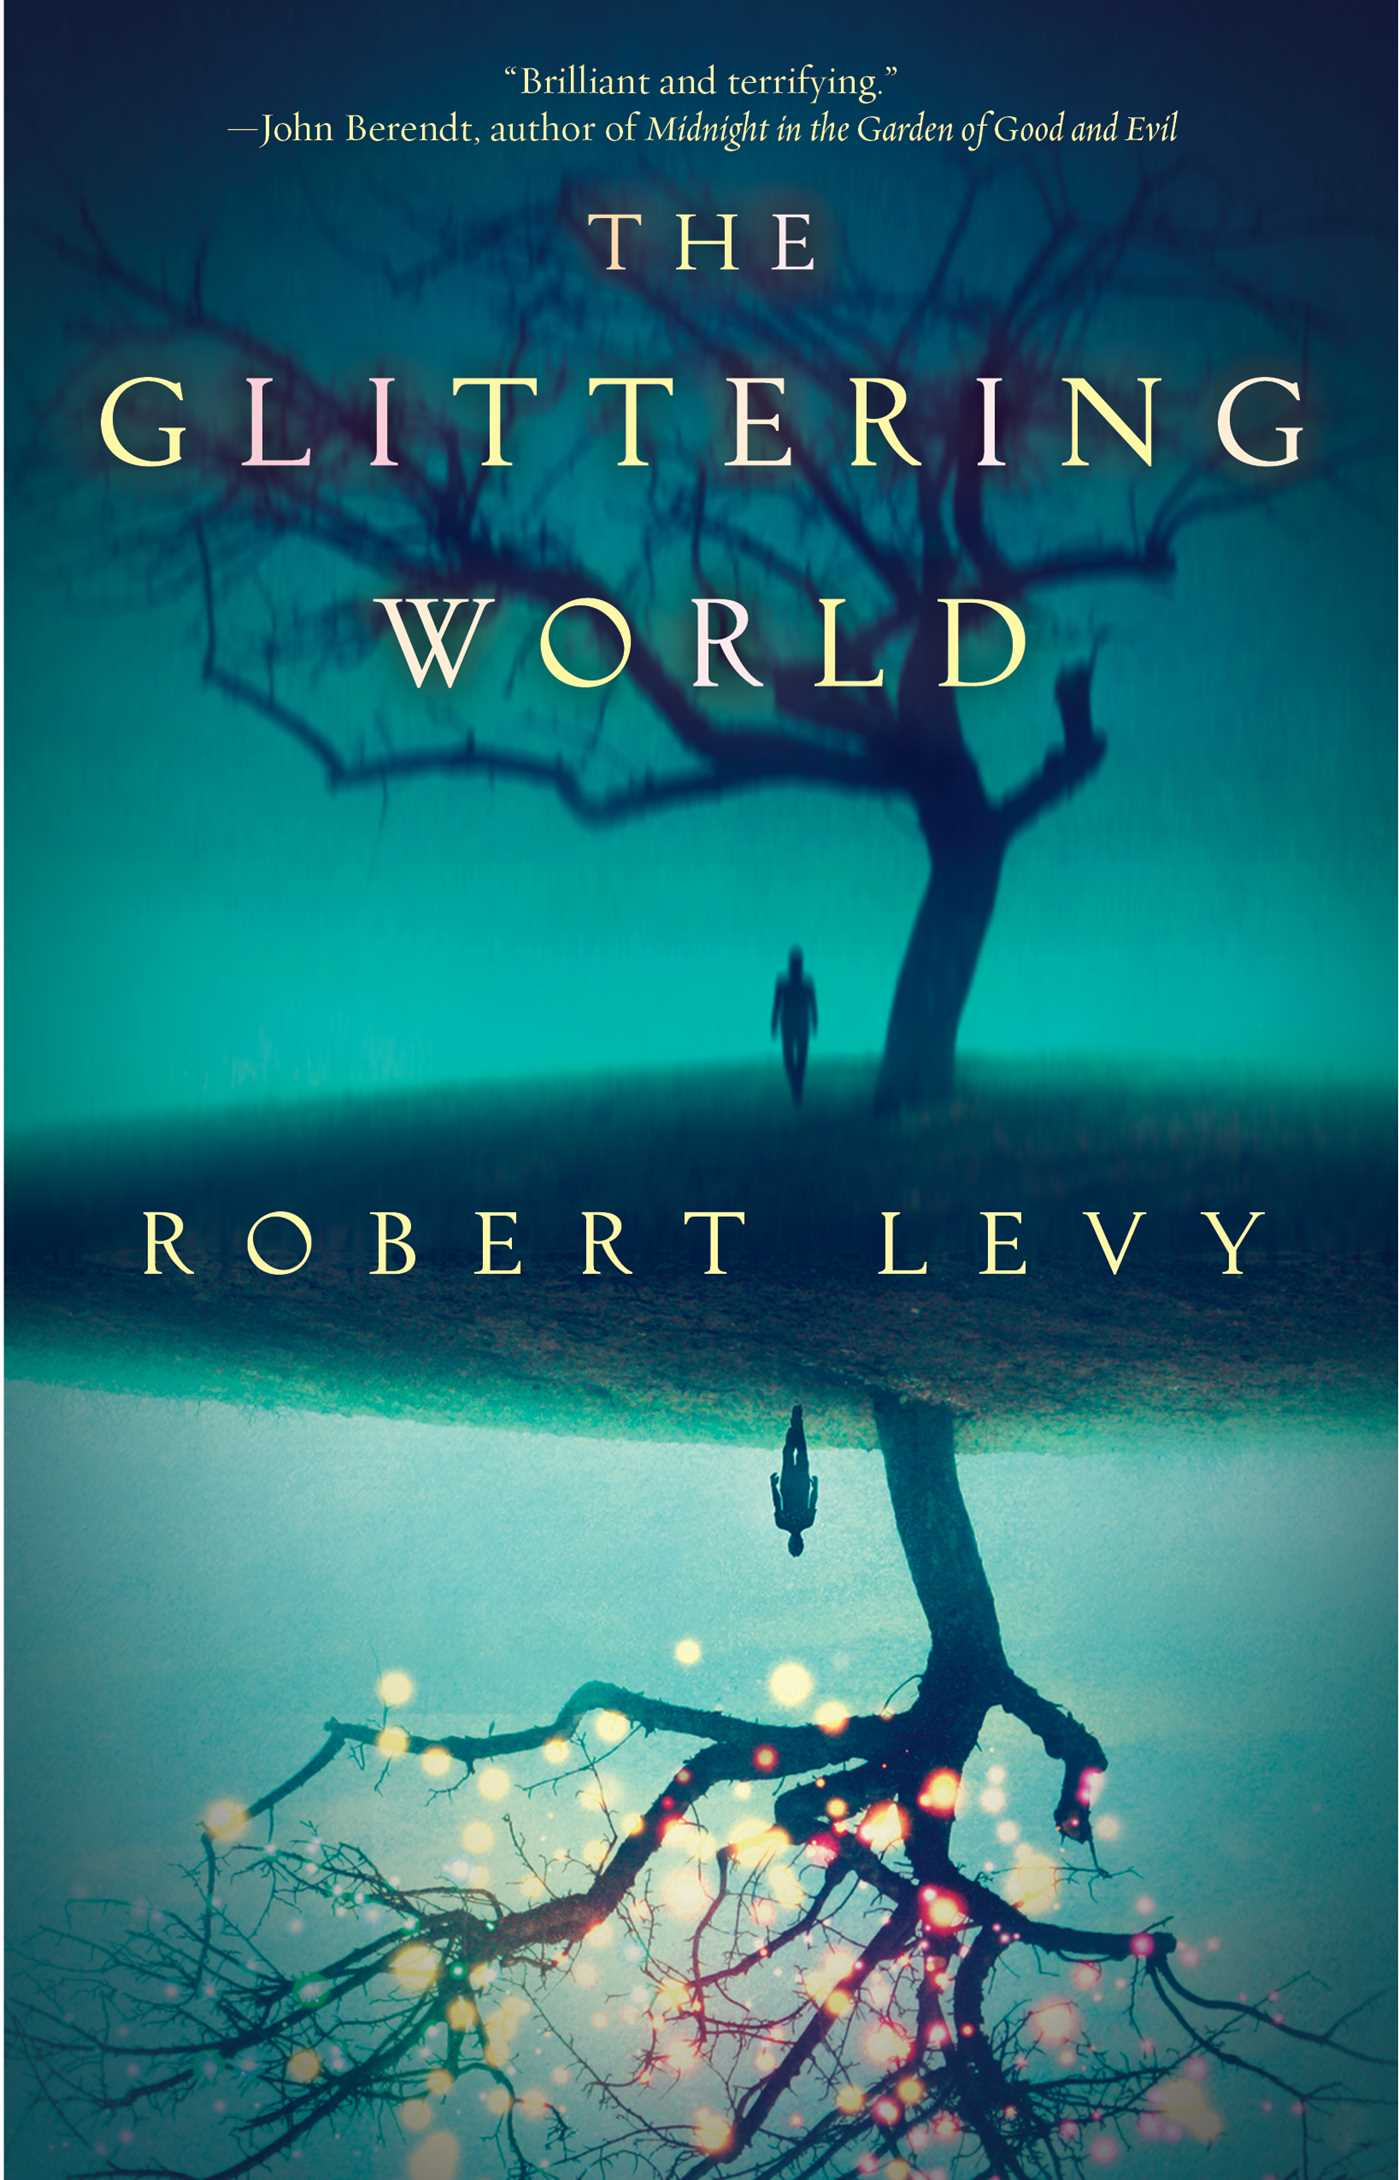 The glittering world 9781476774534 hr